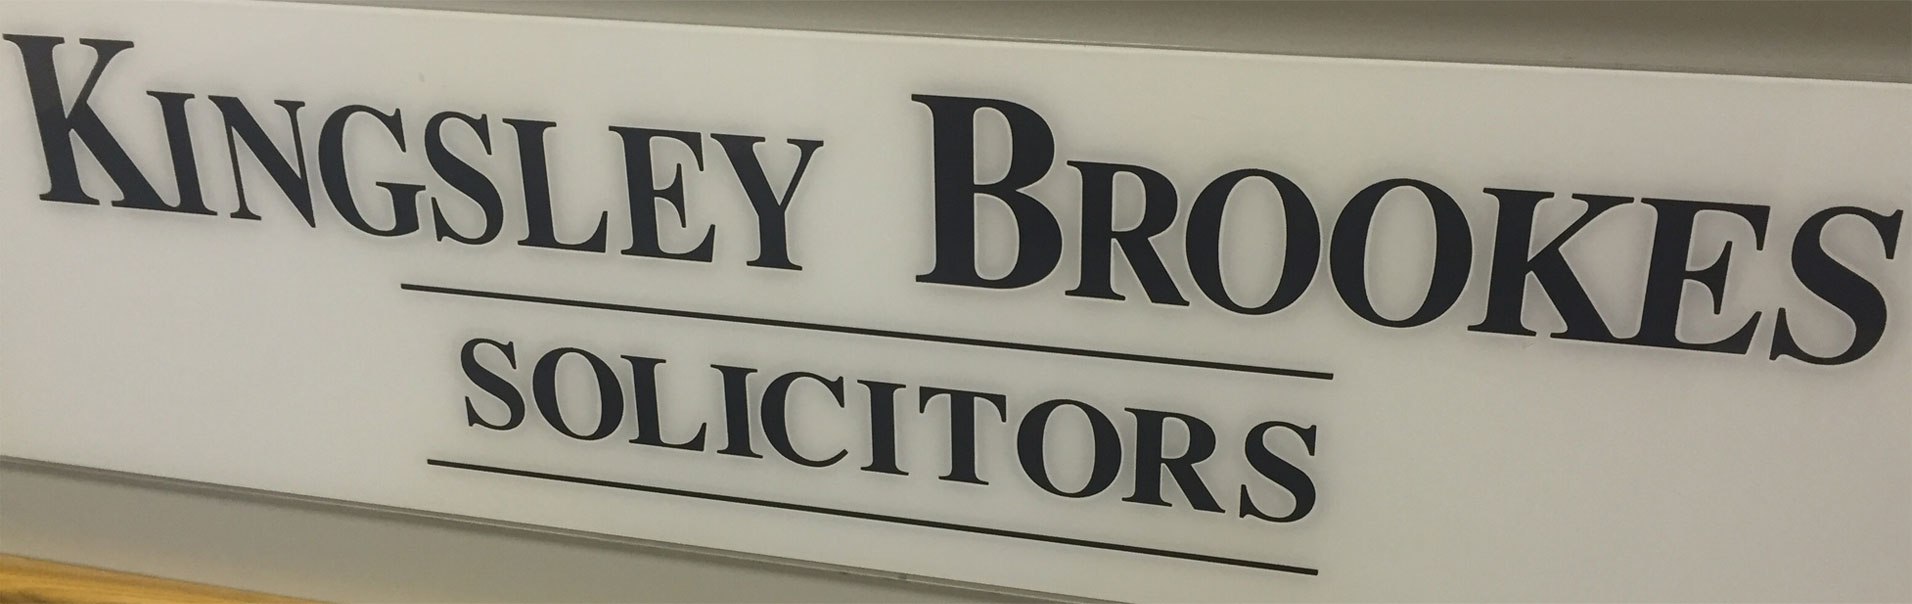 Kingsley Brookes Solicitors logo